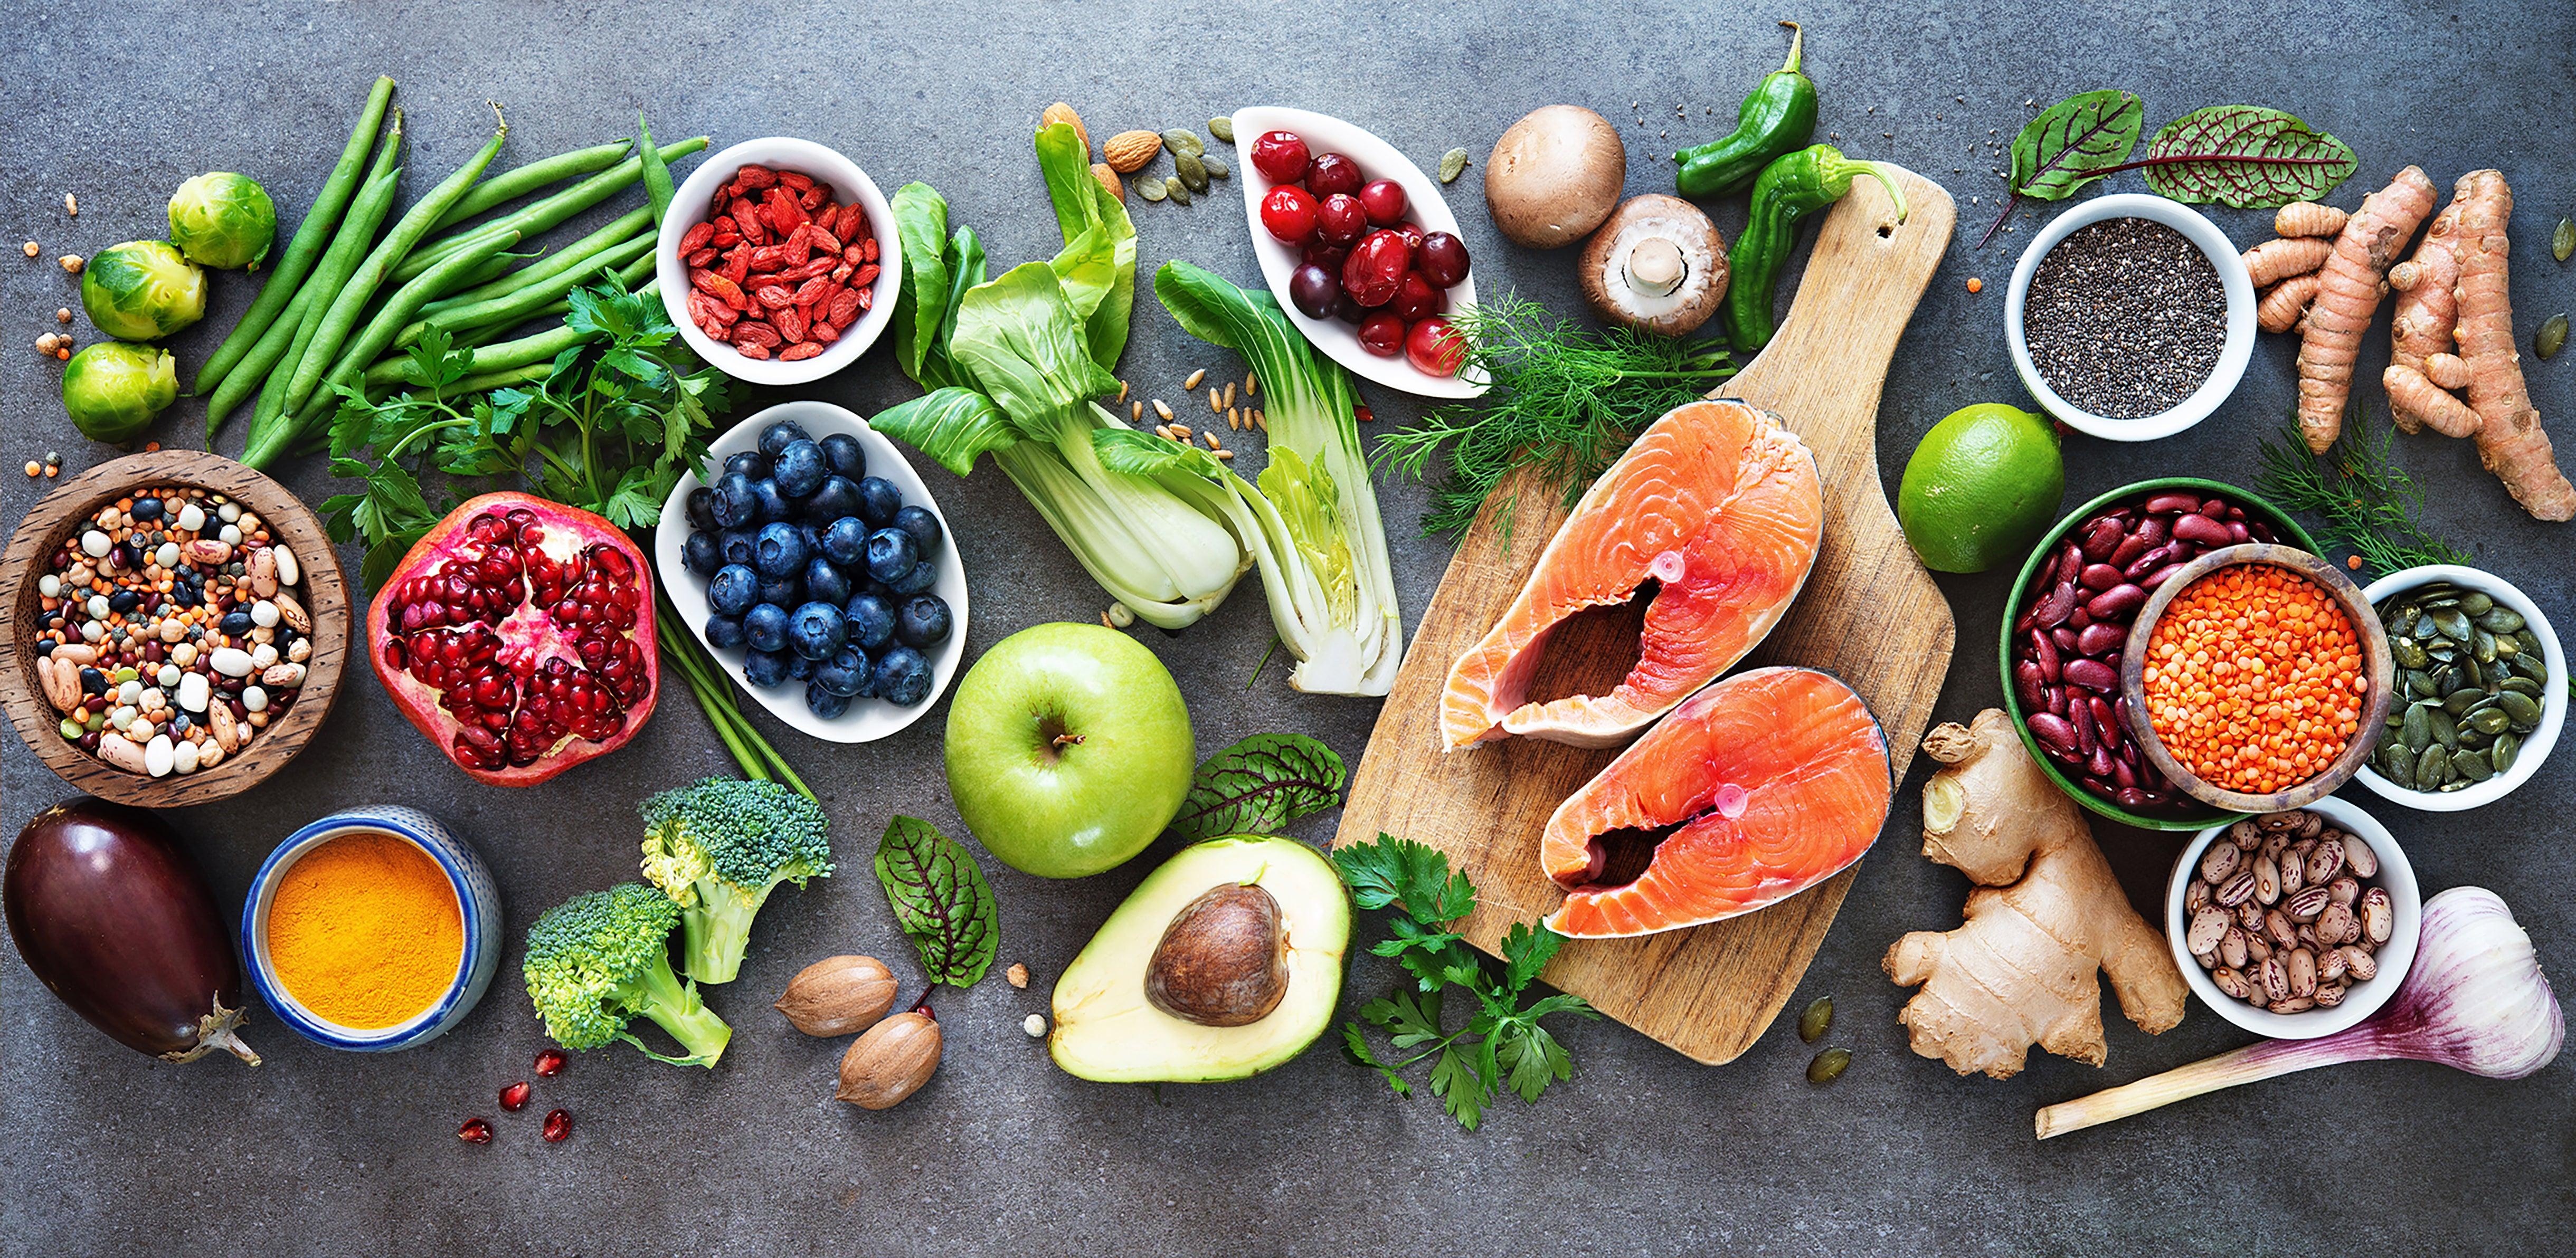 An assorted group of whole foods such as vegetables, fruits, legumes, beans, and salmon on a grey background